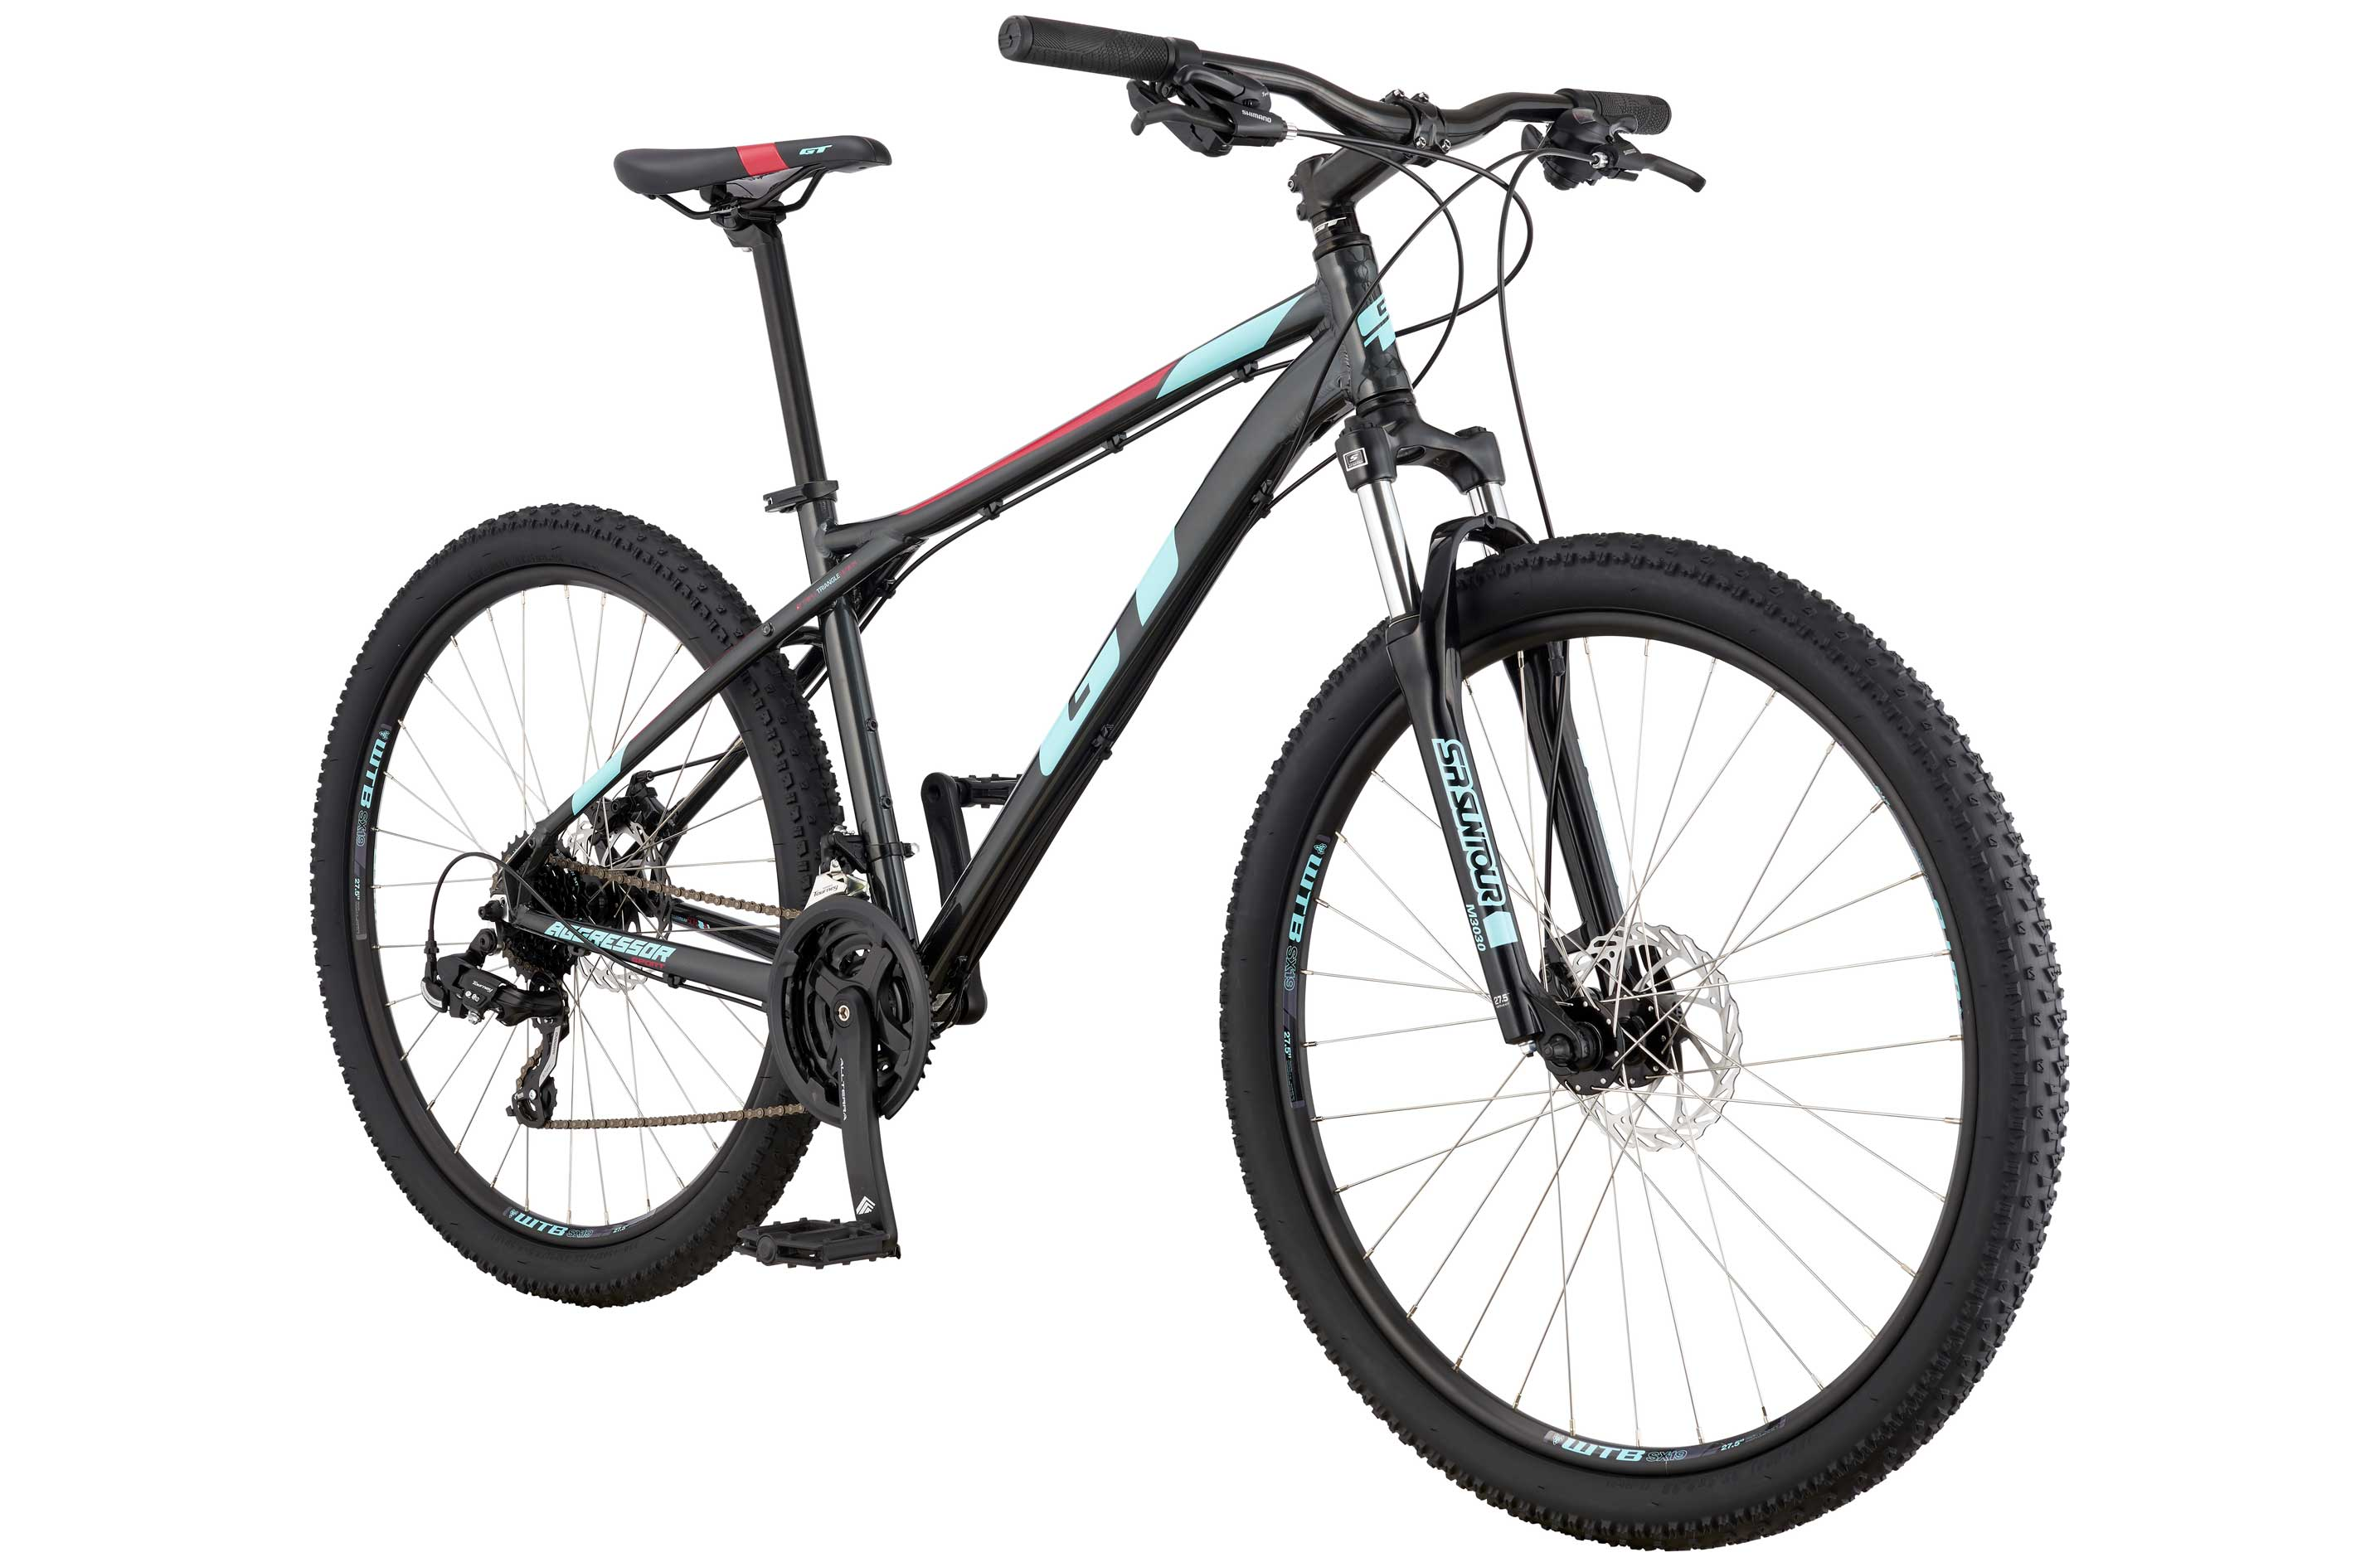 2870x1890 Gt Aggressor Sport Mountain Bike Mountain Bikes Evans Cycles